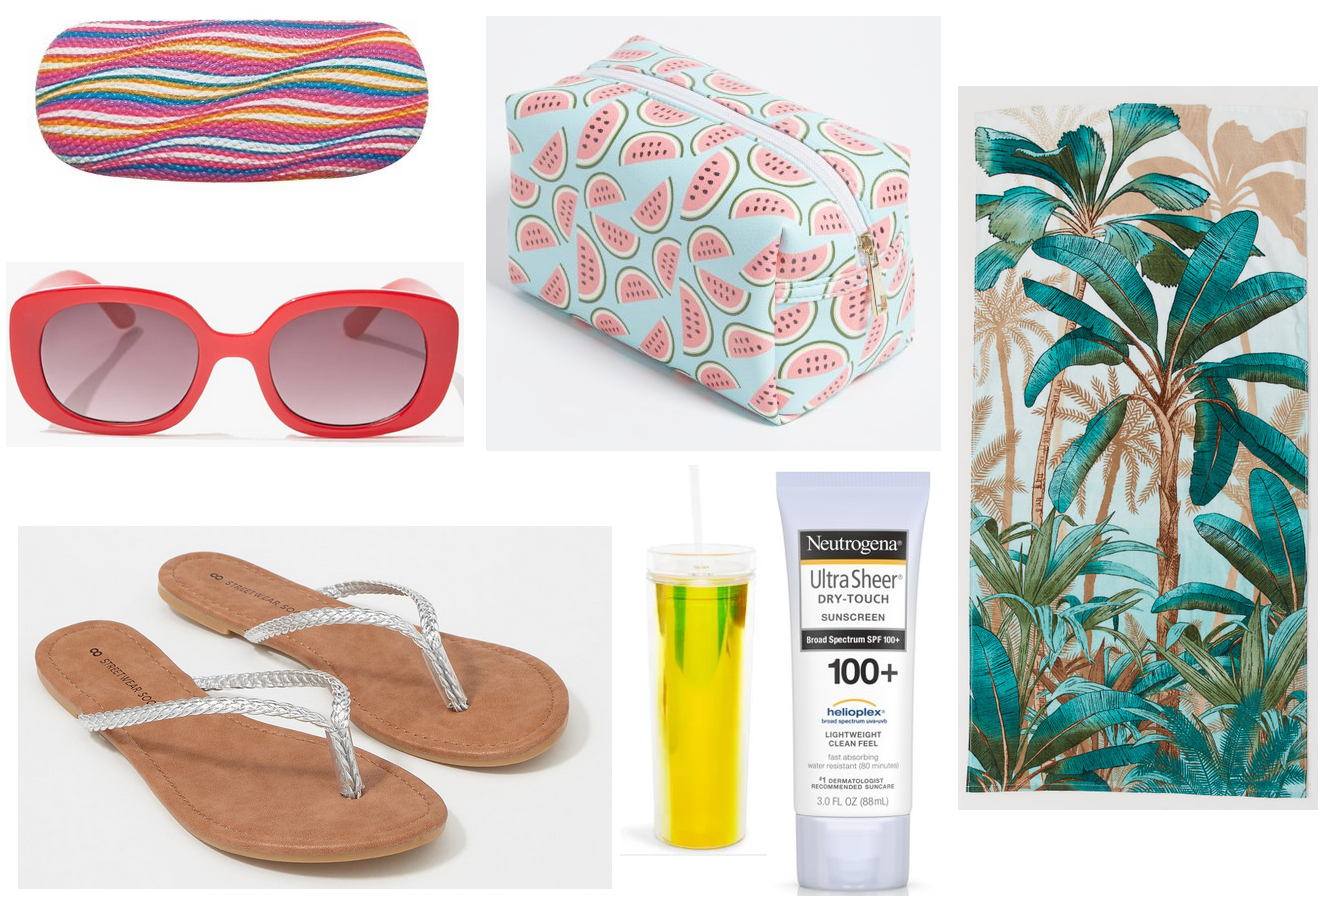 5748736d8ca2c SHOP: eyeglass case @Walmart, red sunglasses @Forever 21, silver braided  flip flops @Charlotte Russe, watermelon makeup pouch @Rue 21, travel water  bottle ...